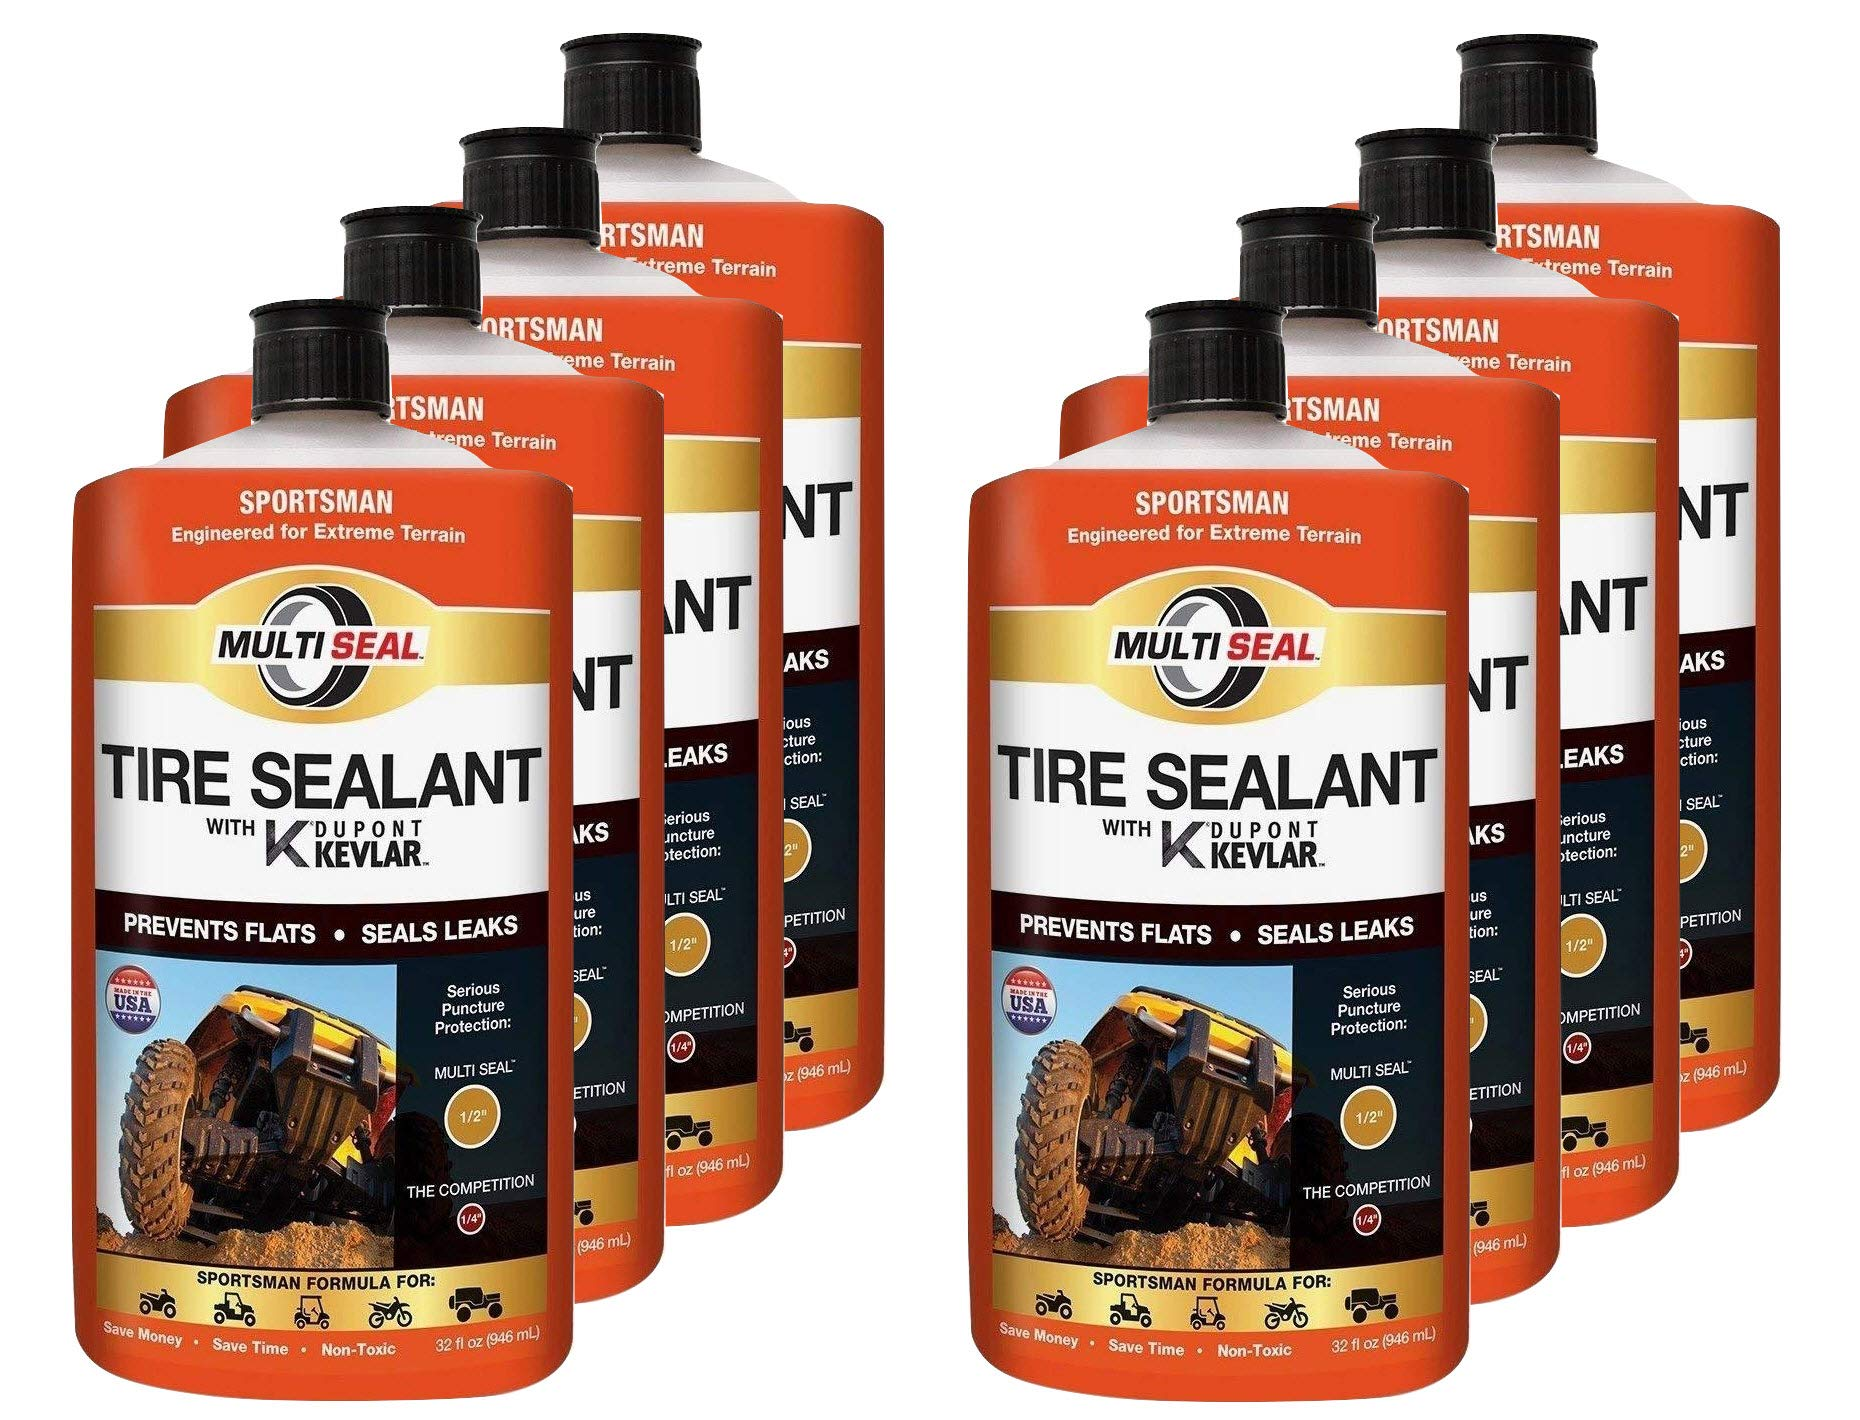 MULTI SEAL 20138 Tire Sealant with Kevlar (Sportsman Formula), Great for ATVs, UTVs / Side-by-Sides, Golf Carts, Dirt Bikes, Off-Road-Only Jeeps and more, 8-Pack (256 oz.) by MULTI SEAL (Image #1)